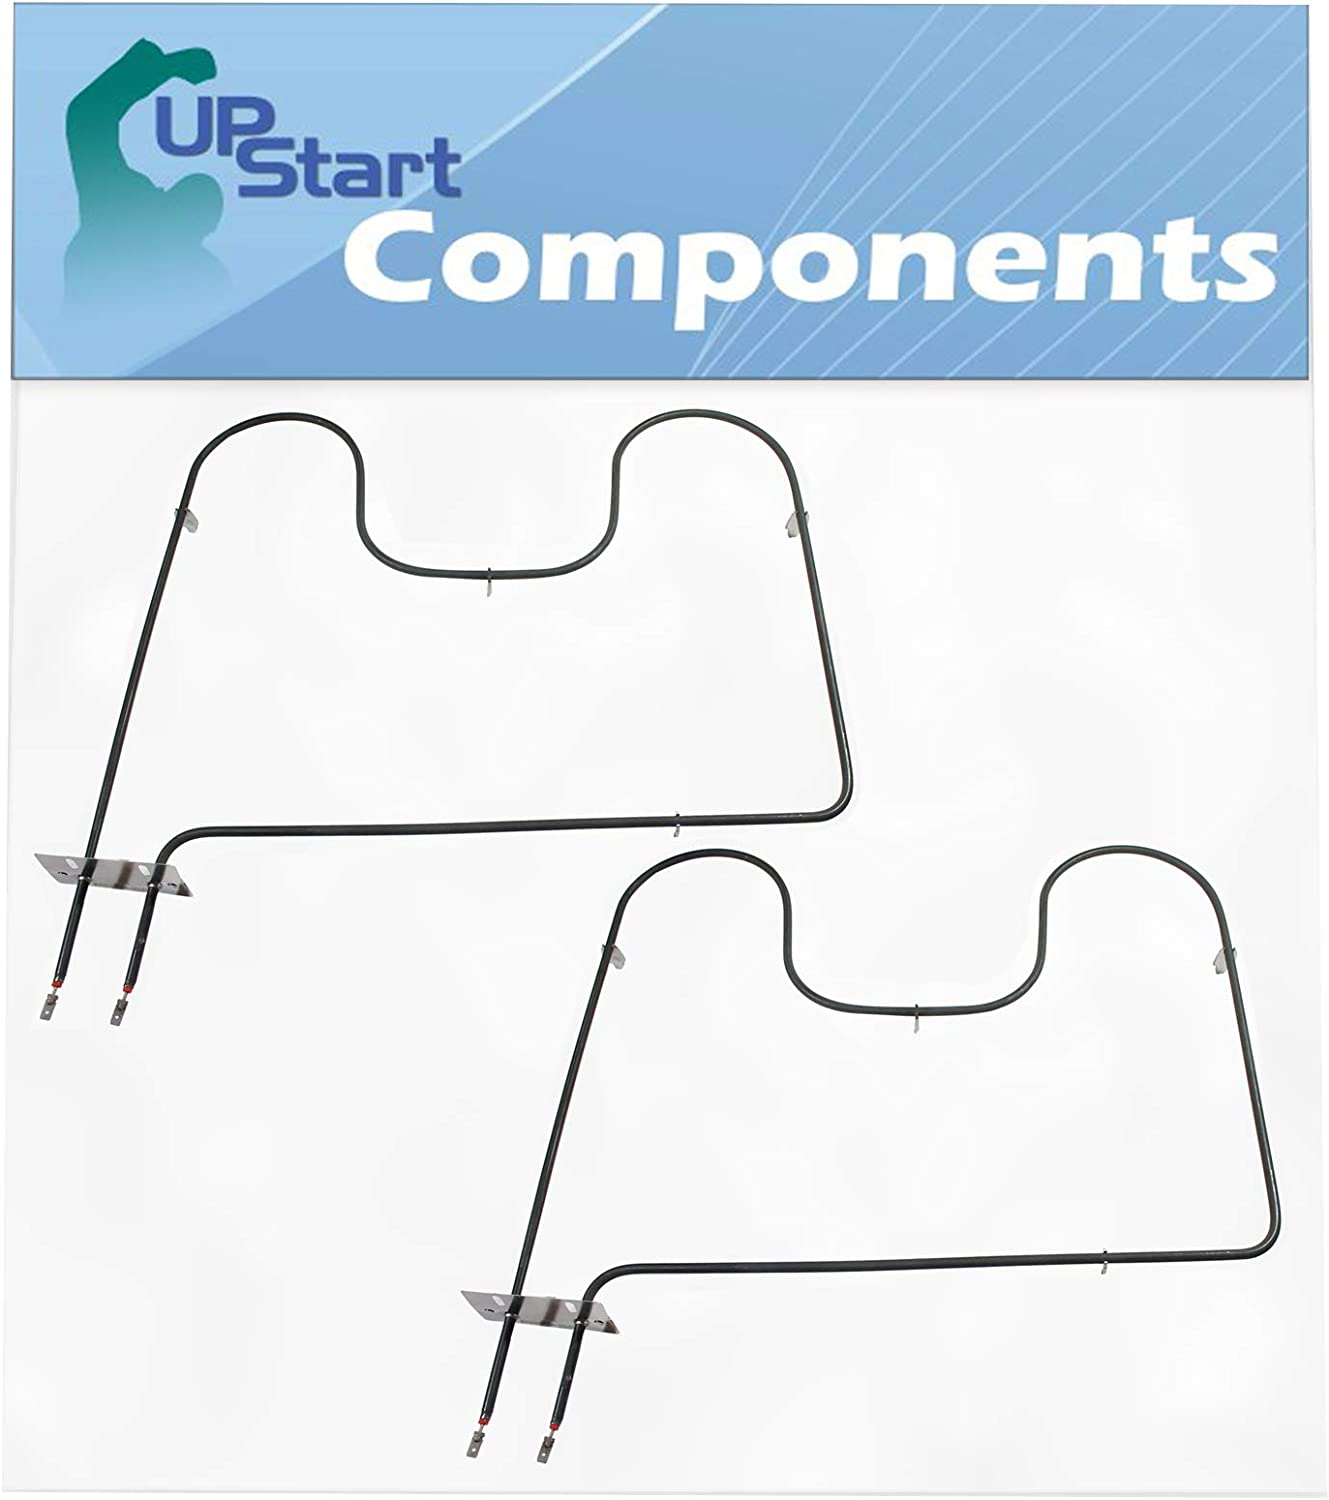 2-Pack 7406P428-60 Oven Heating Element Replacement for Maytag MER6755AAS - Compatible with WP7406P428-60 Bake Element